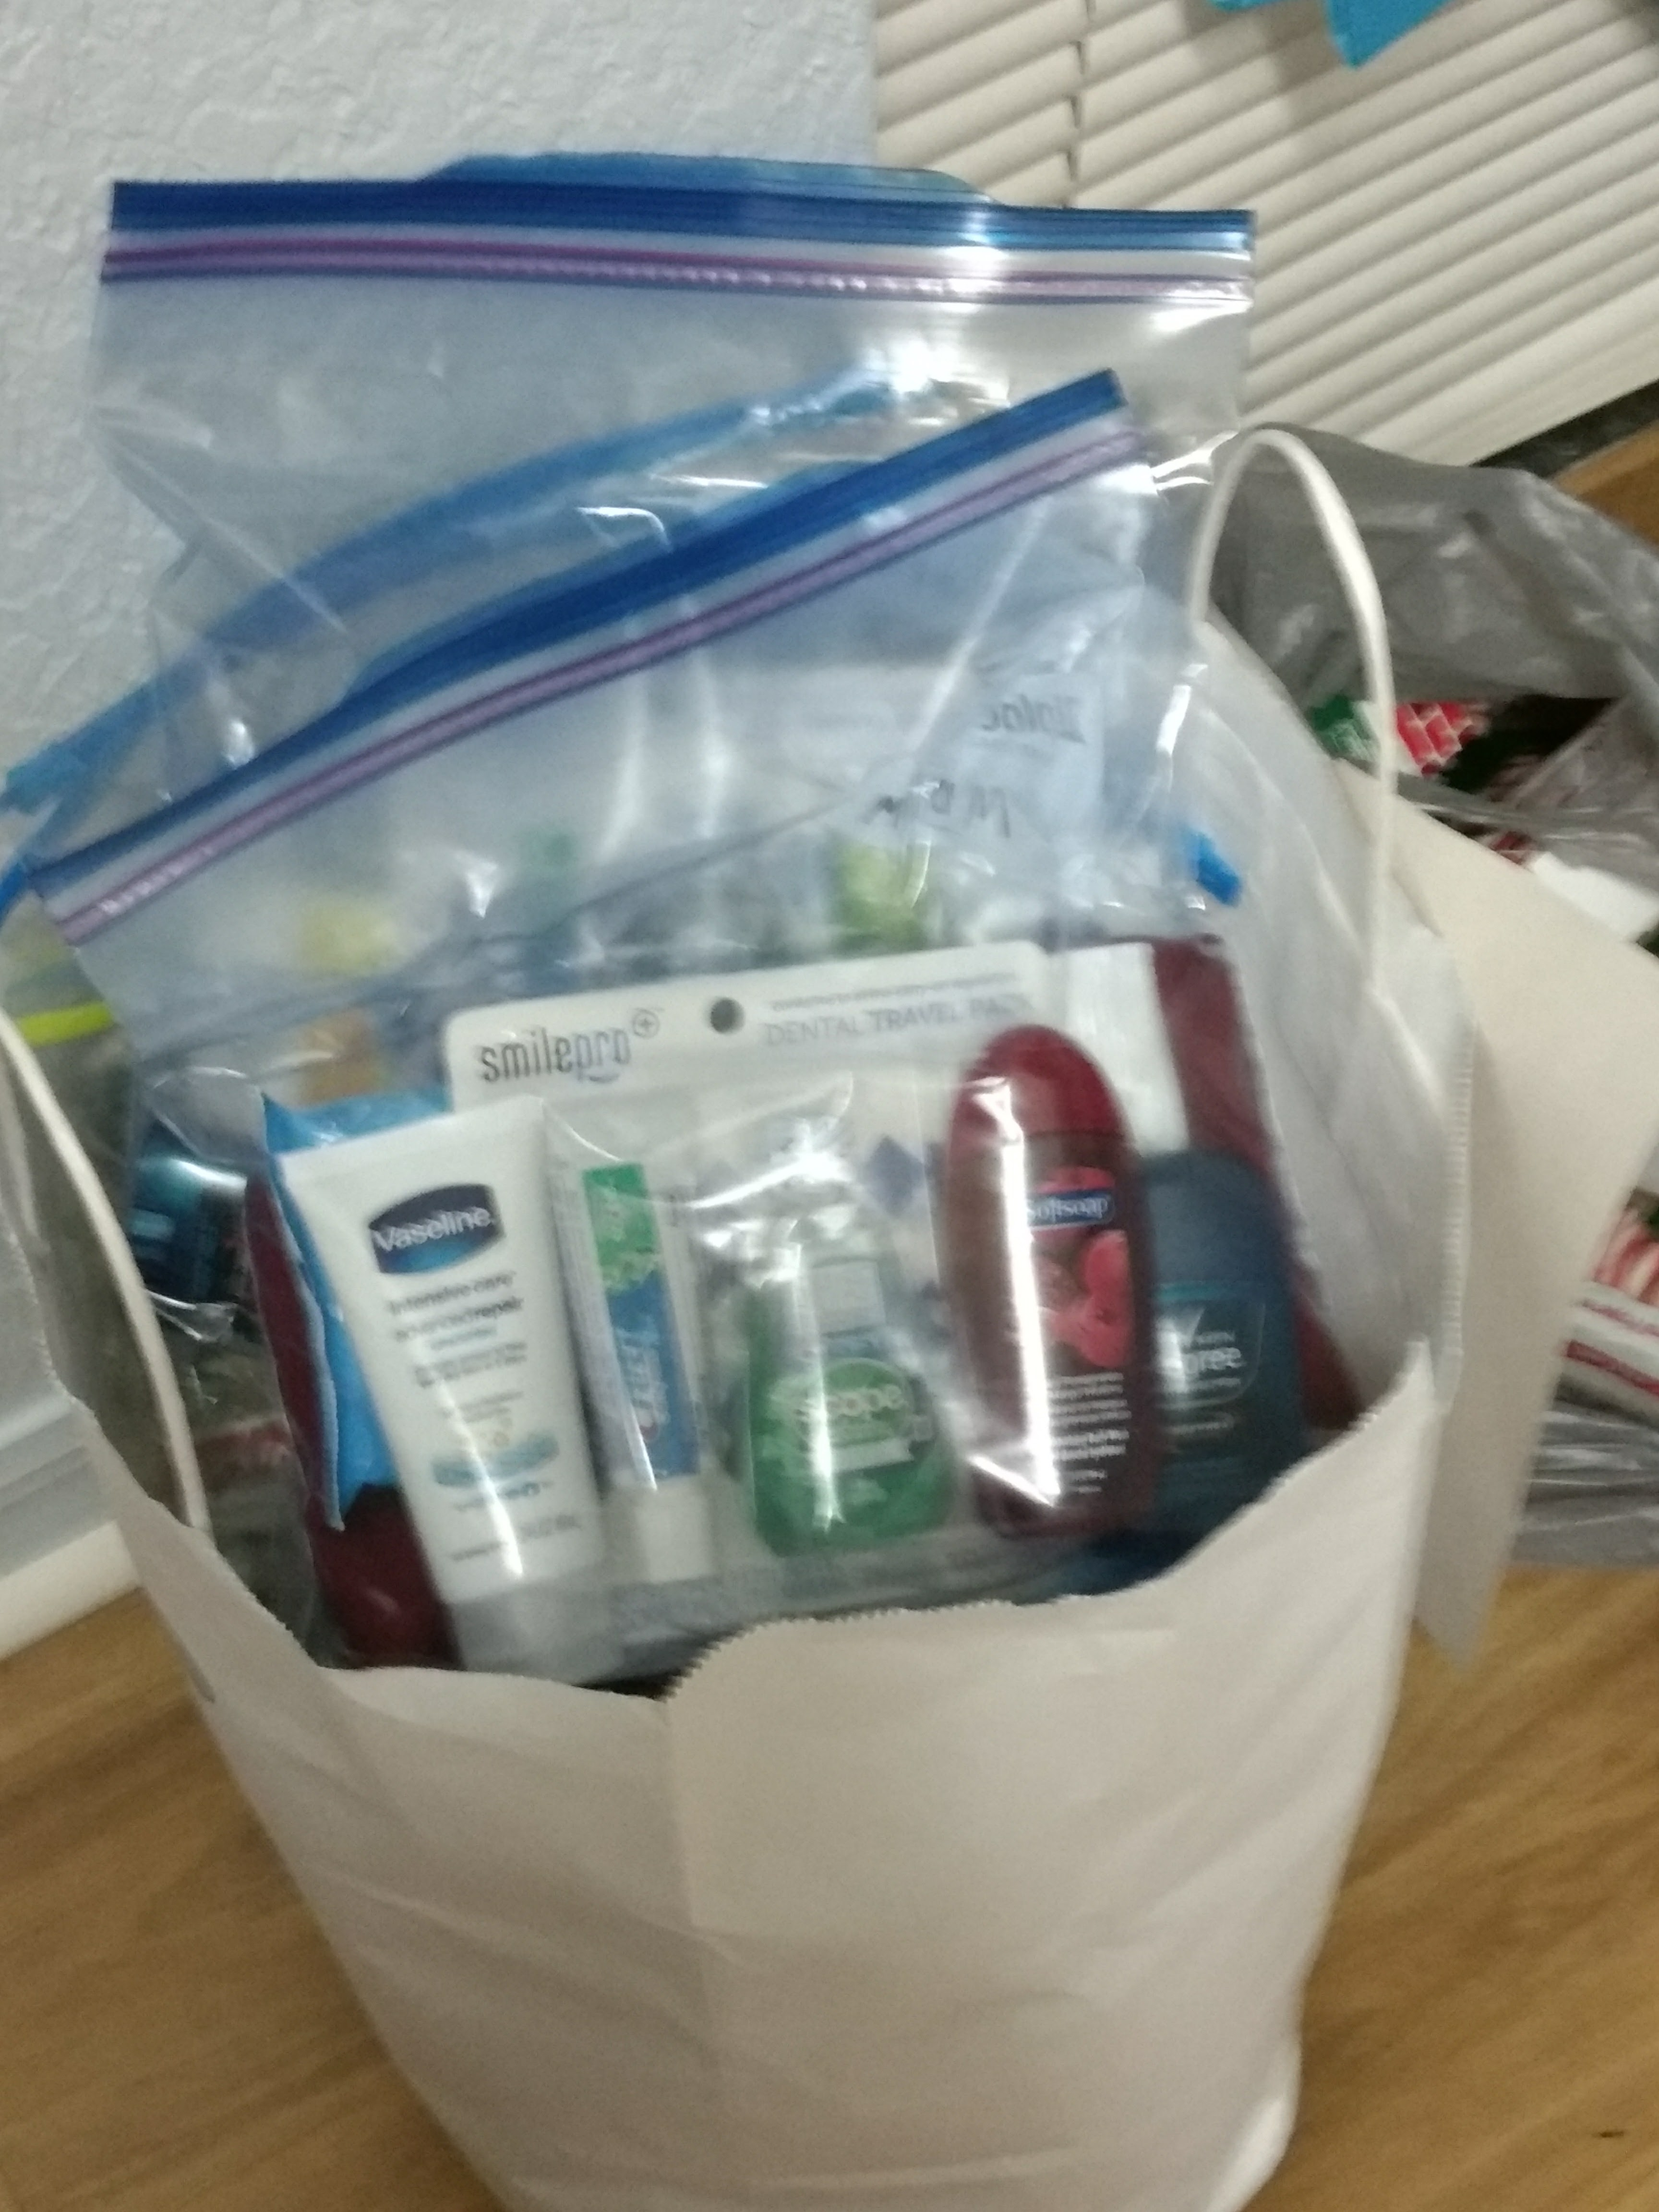 Hygiene donations for homeless people.